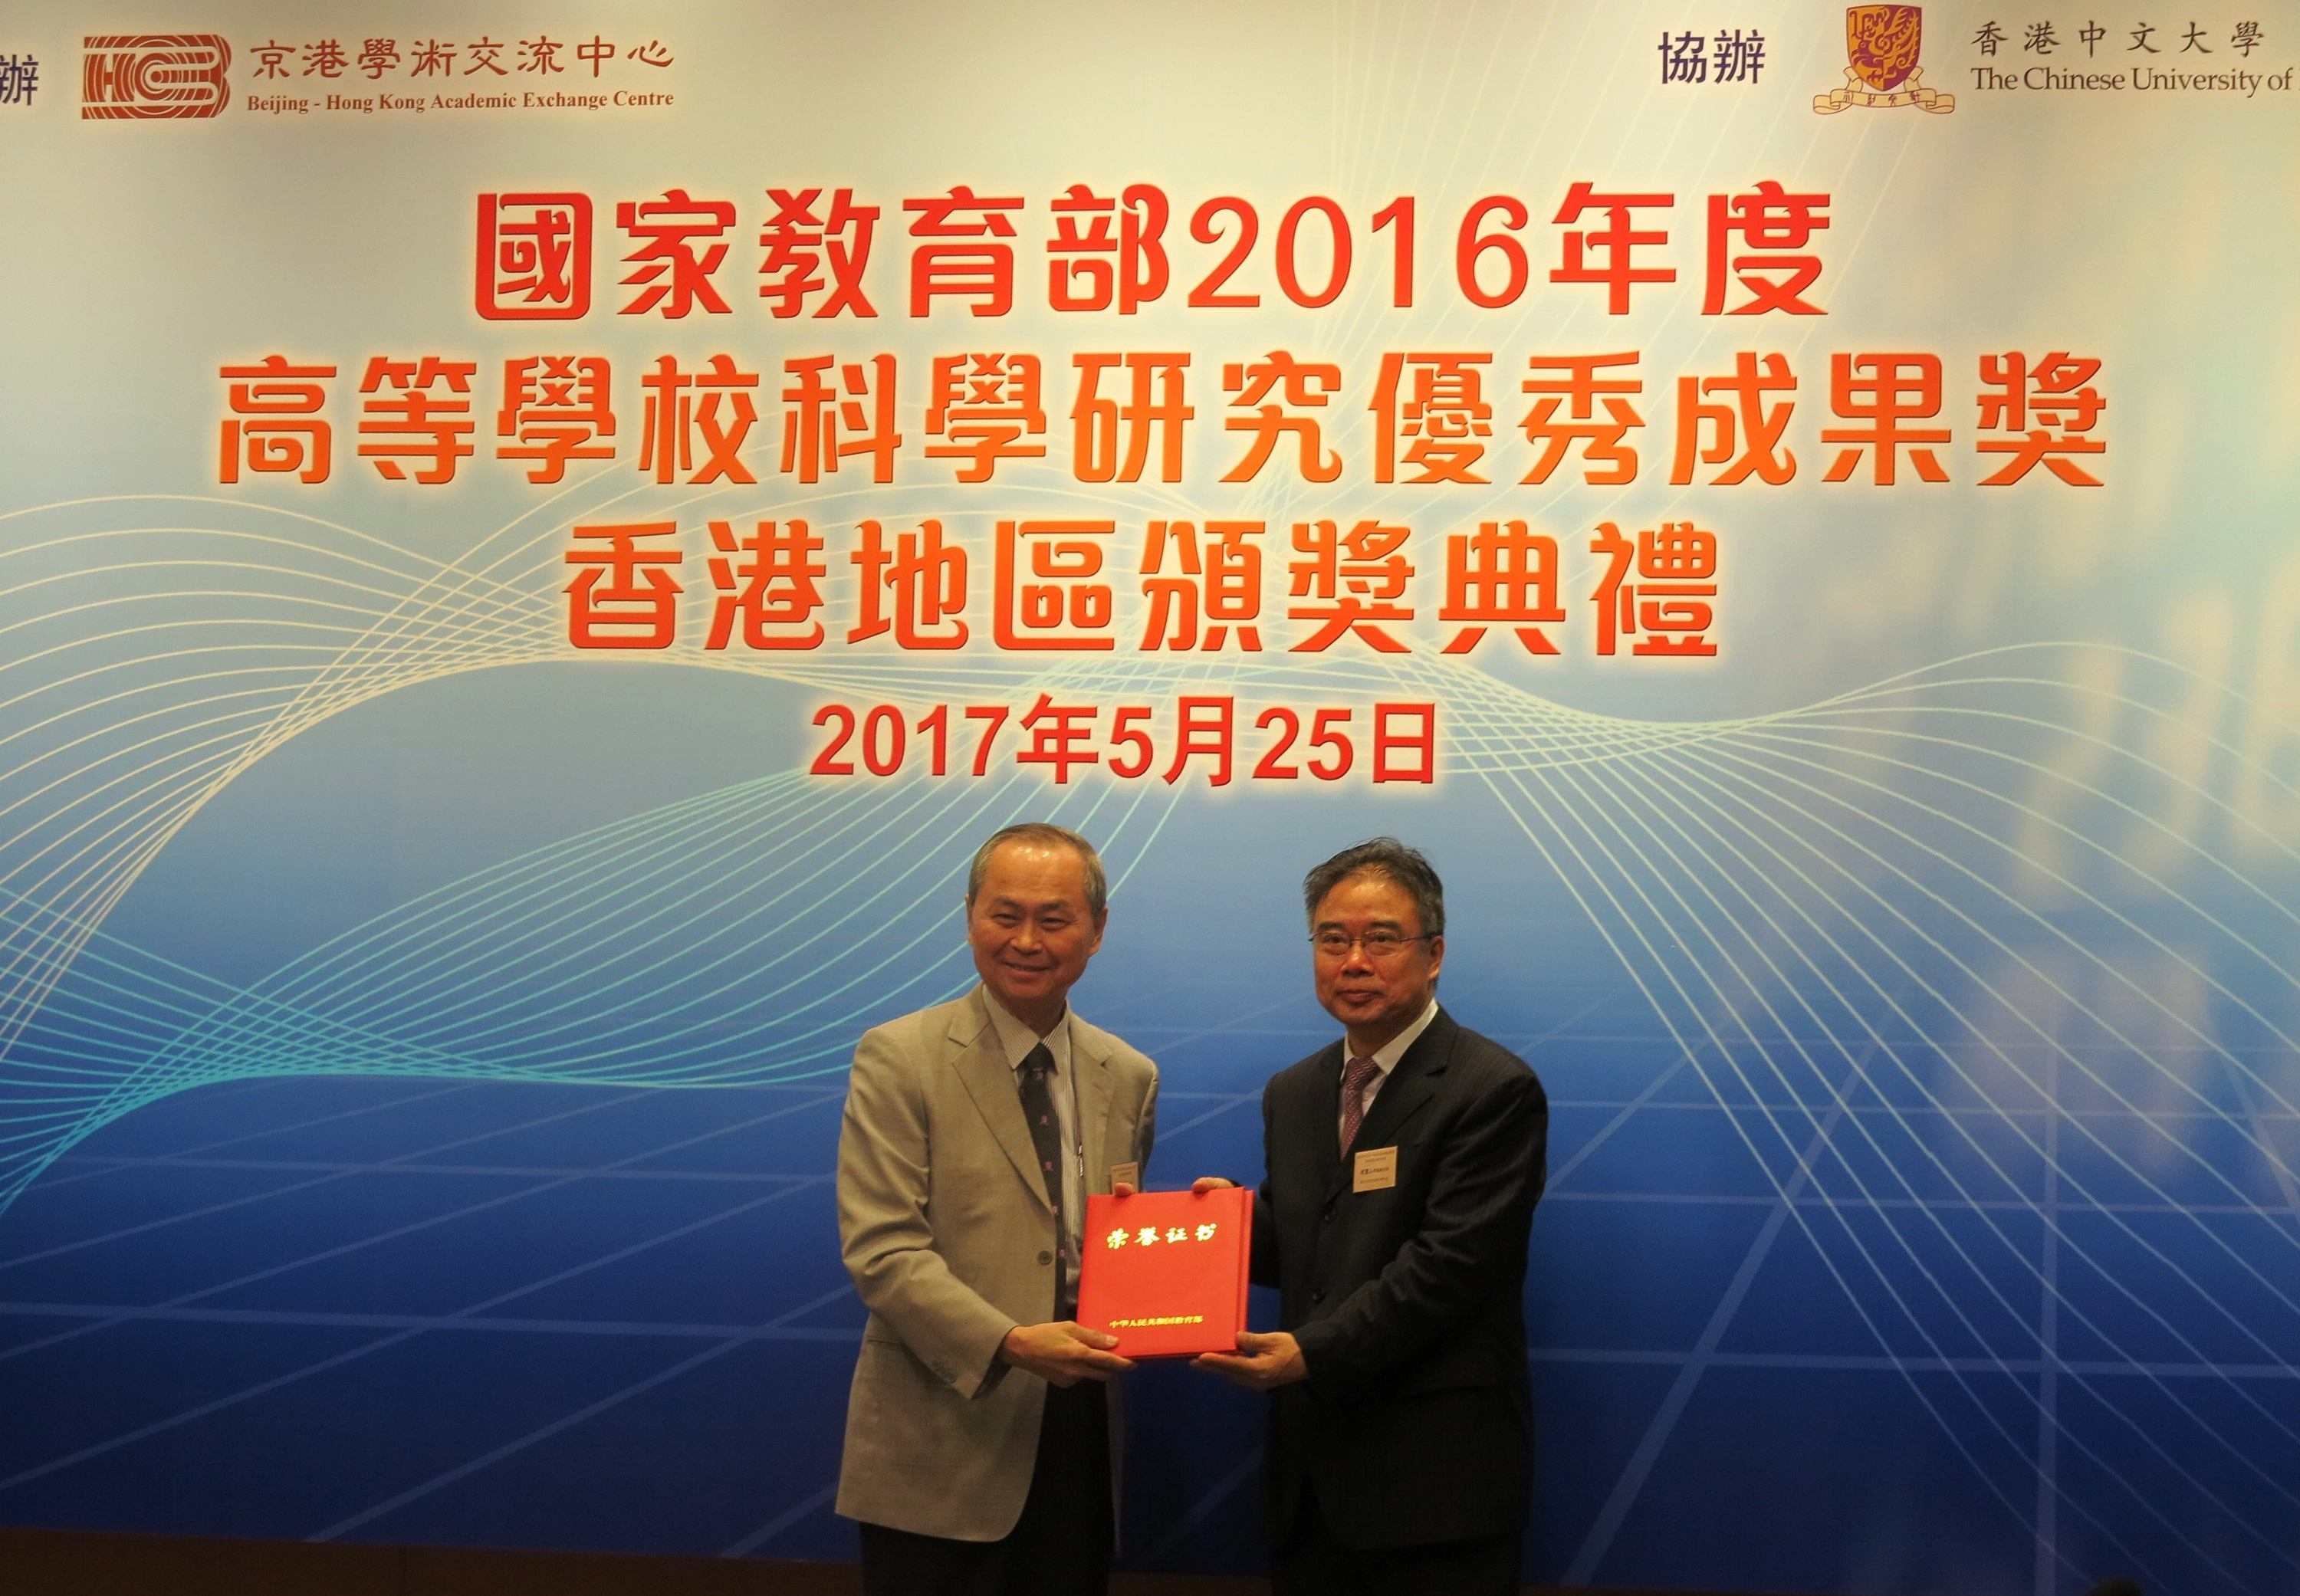 CUHK receives 2 Higher Education Outstanding Scientific Research Output Awards (Science and Technology) from MoE in 2016. Prof. Fok Tai-fai, Pro-Vice-Chancellor of CUHK represents the University to receive the award certificates from Mr. Zhao Ling-Shan, Deputy Director of the Office for Hong Kong, Macau and Taiwan Affairs, MoE (right).